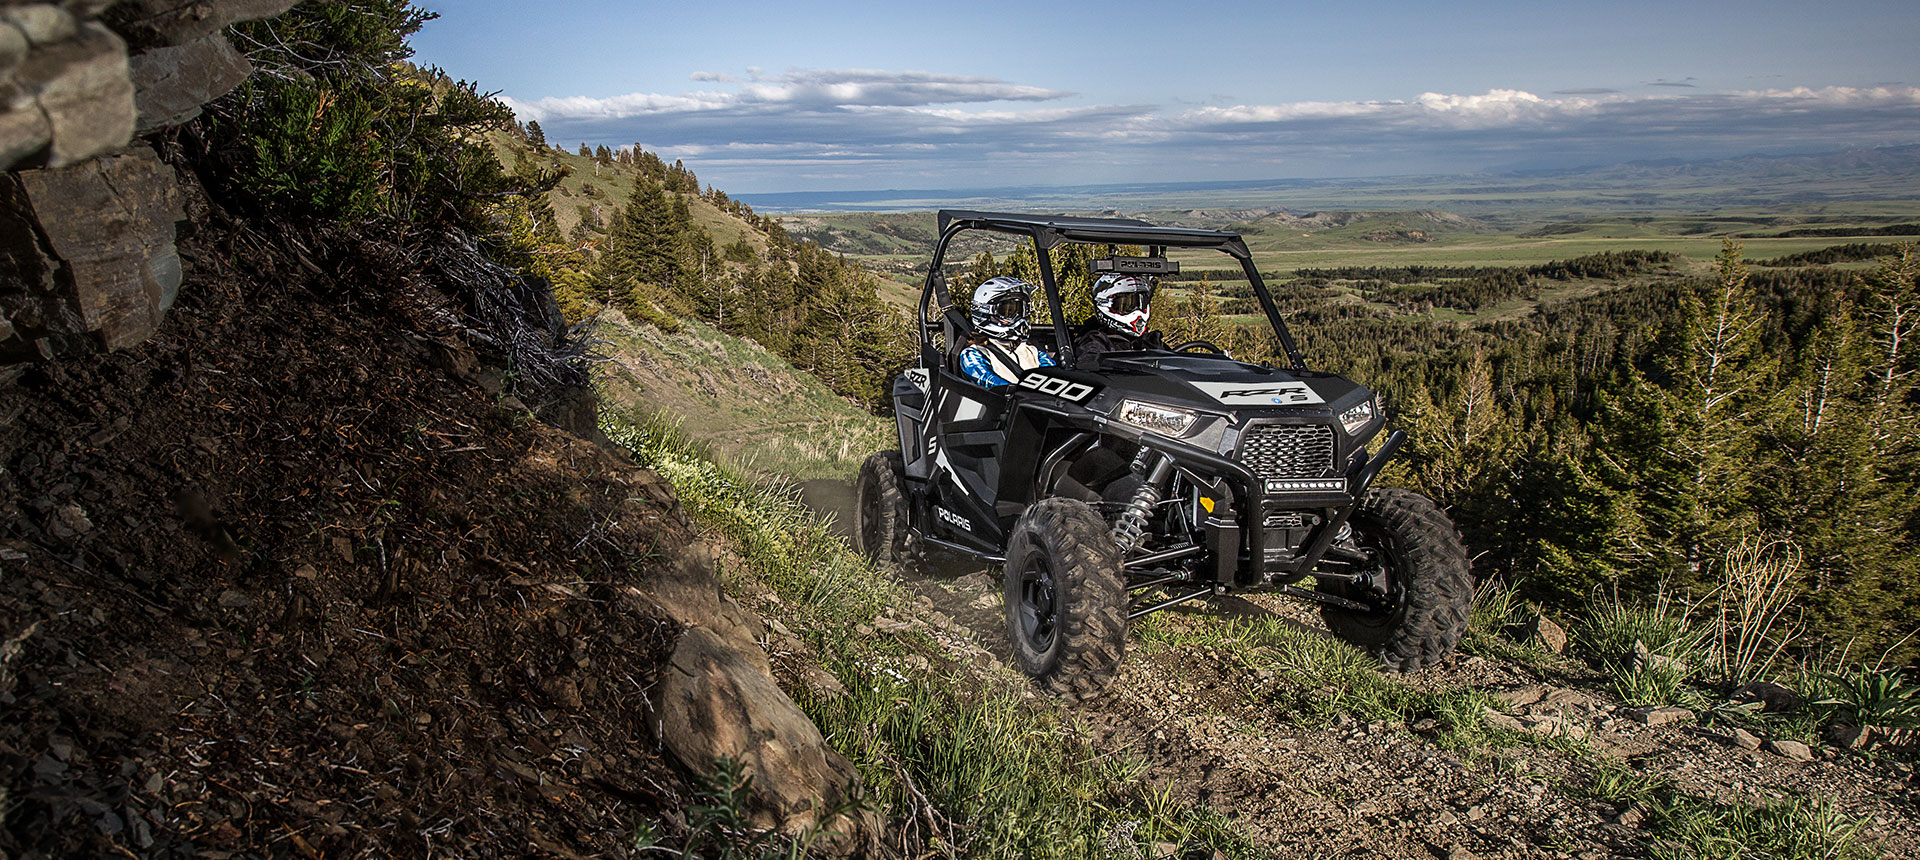 2019 Polaris RZR S 900 EPS in Park Rapids, Minnesota - Photo 4